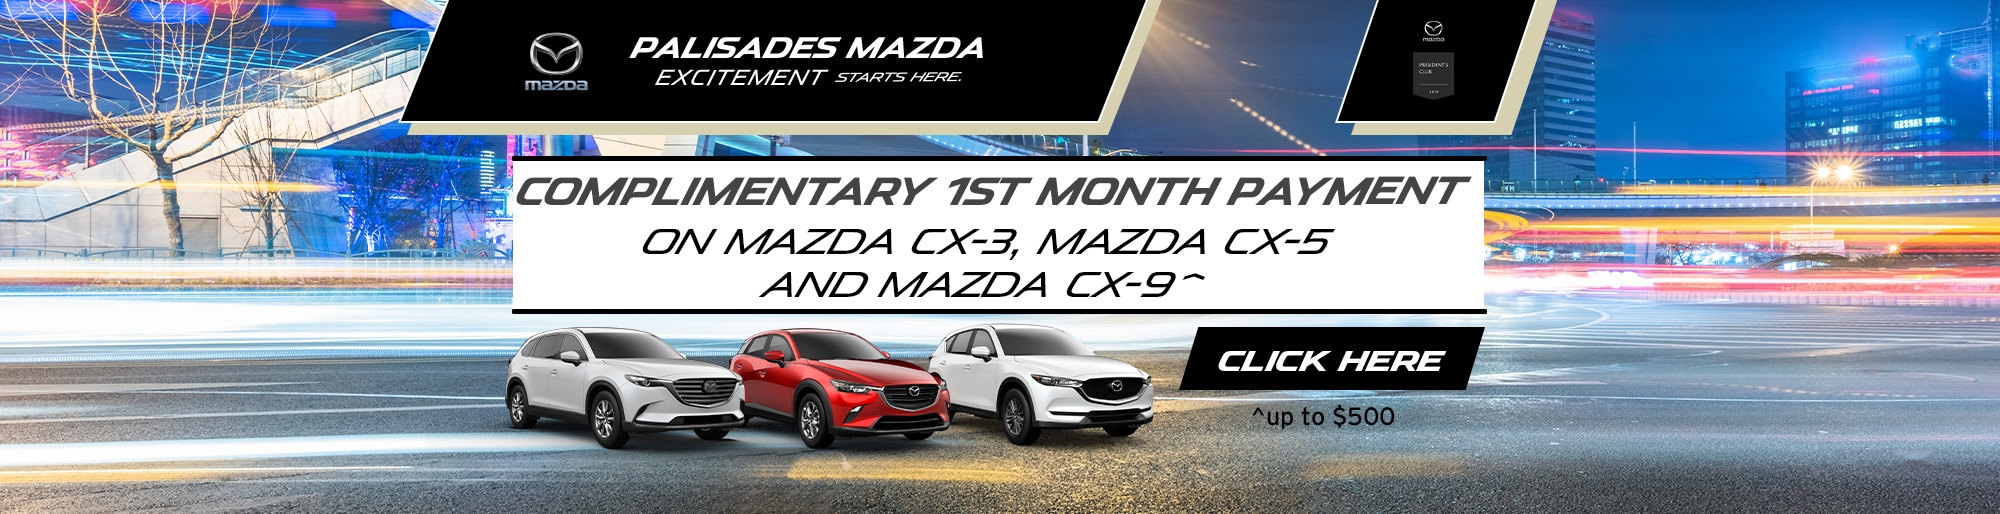 Mazda Lease Deal Image